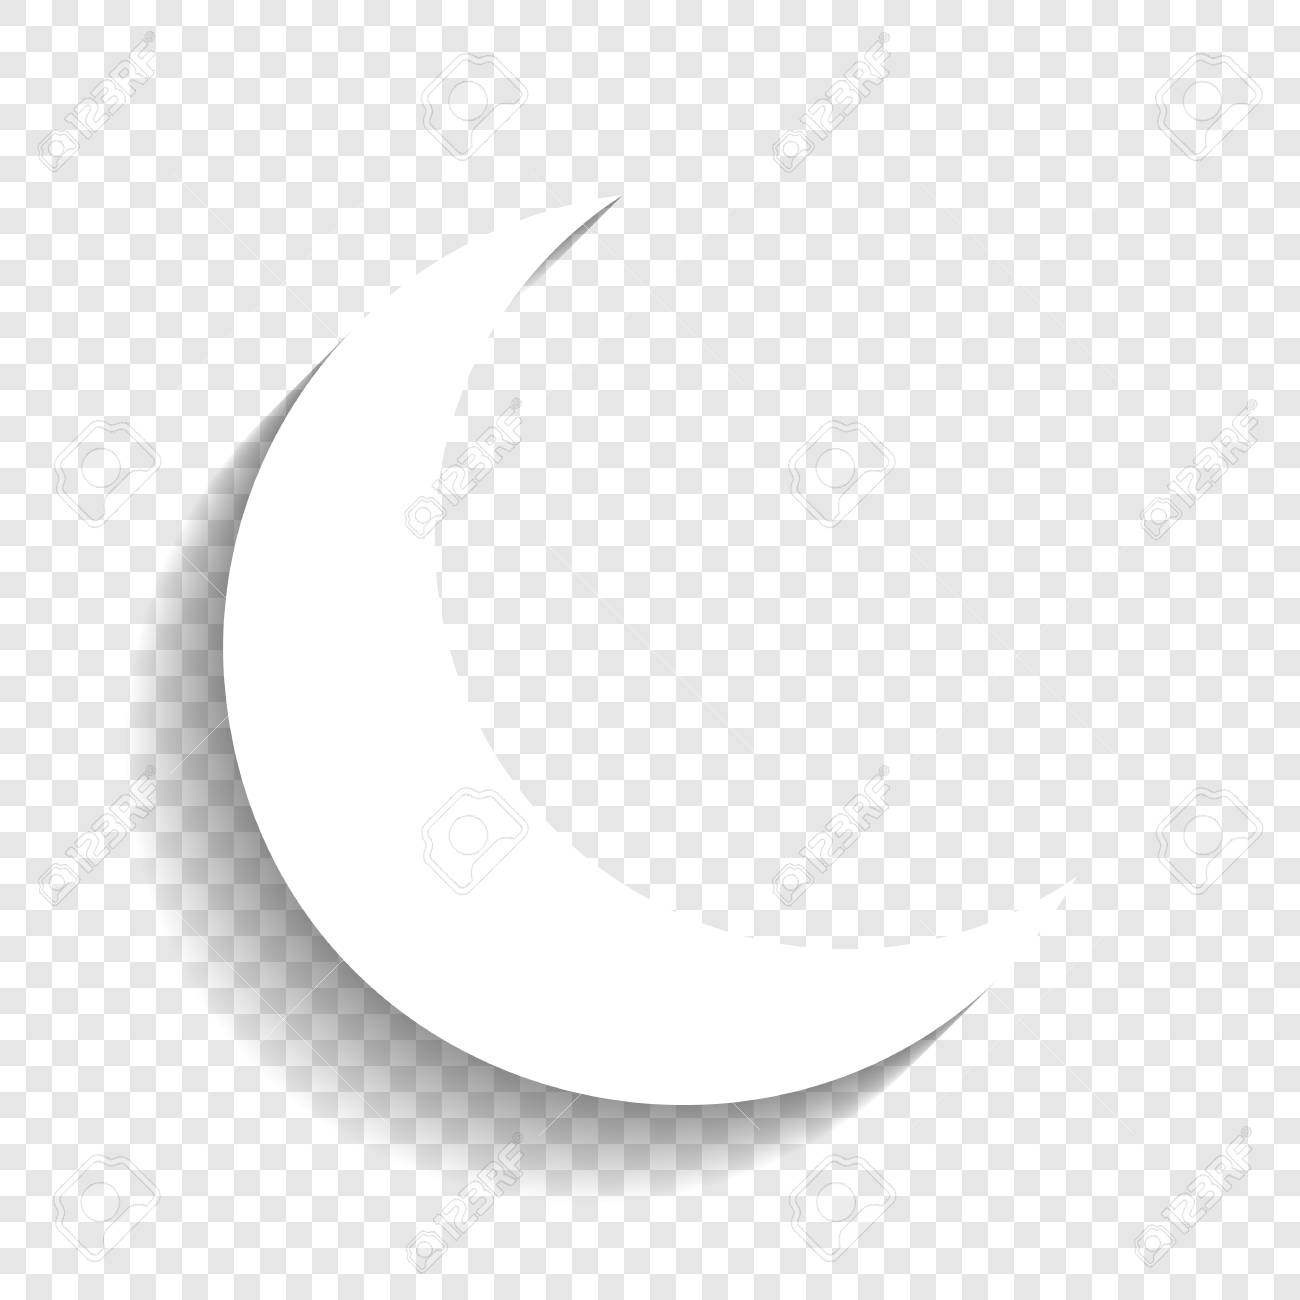 moon sign illustration vector white icon with soft shadow on royalty free cliparts vectors and stock illustration image 80930108 123rf com